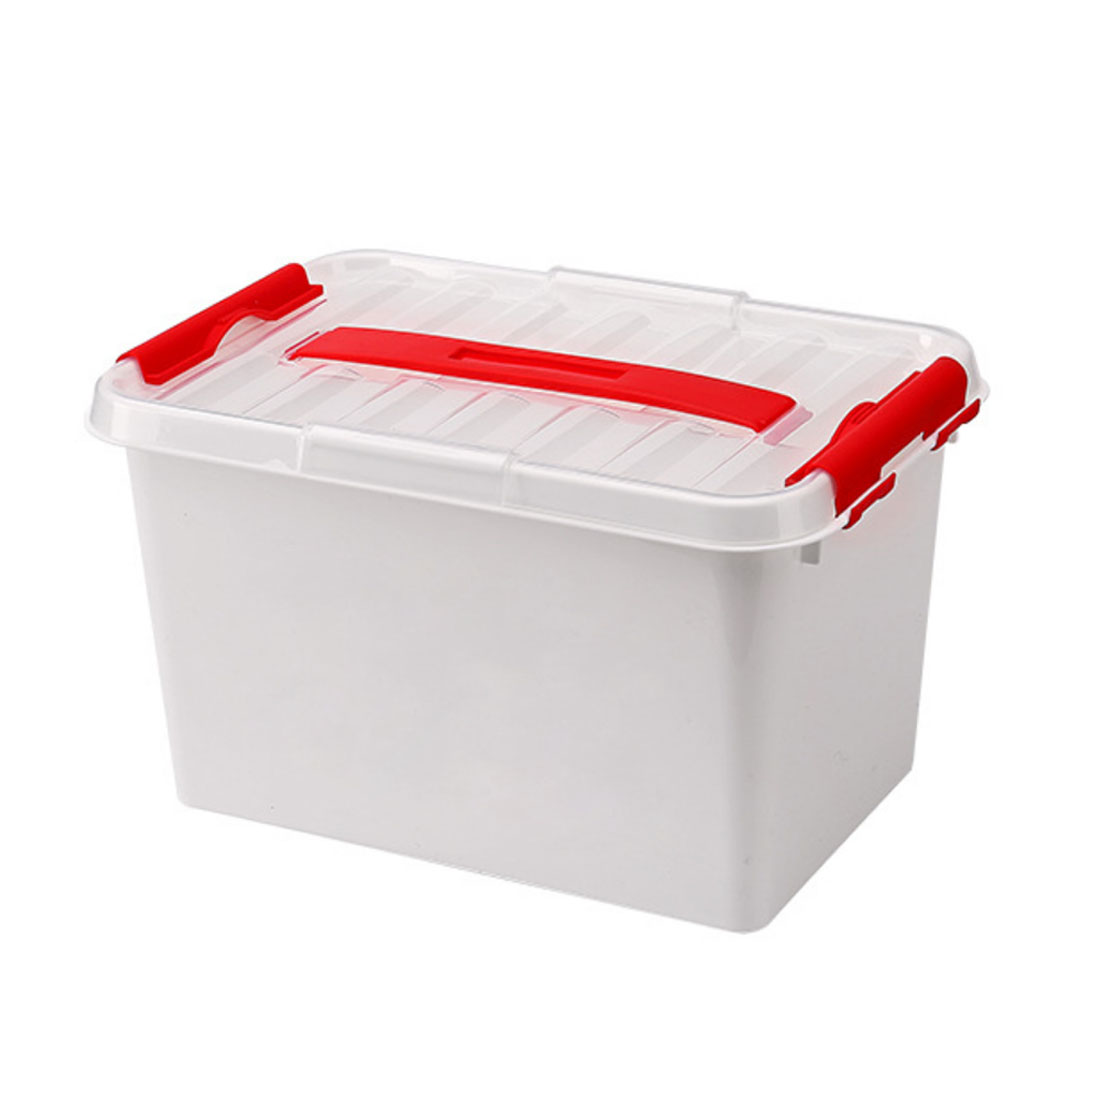 US $13 27 25% OFF|ITECHOR 1 Pcs PP Multi Function Storage Box Portable  First Aid Case Medical Suitcase For Household Office Outdoor Prepare S L-in